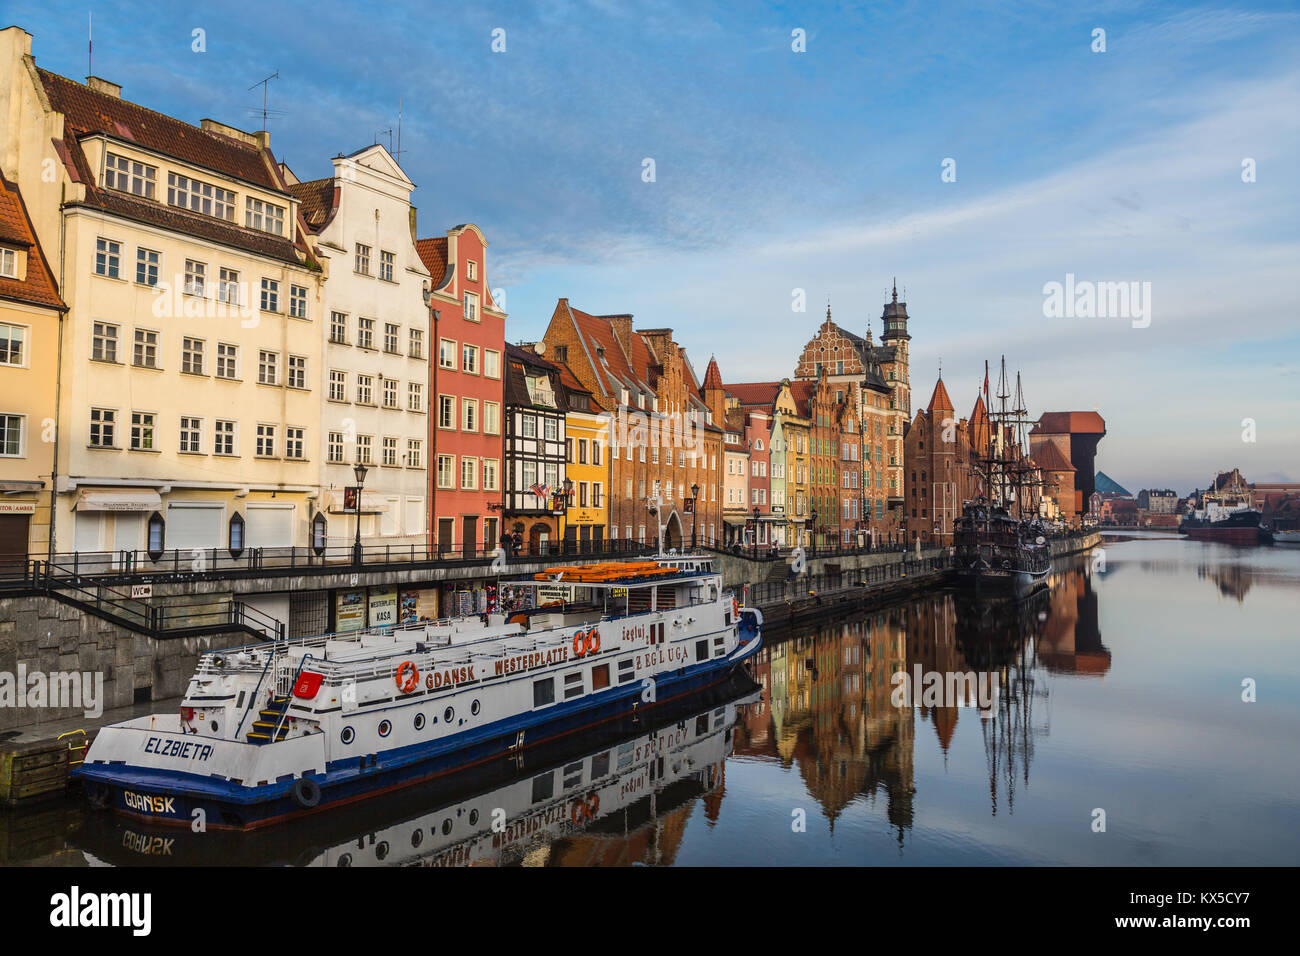 Old historical houses along the Motlawa River in Gdansk (Danzig), Poland - Stock Image